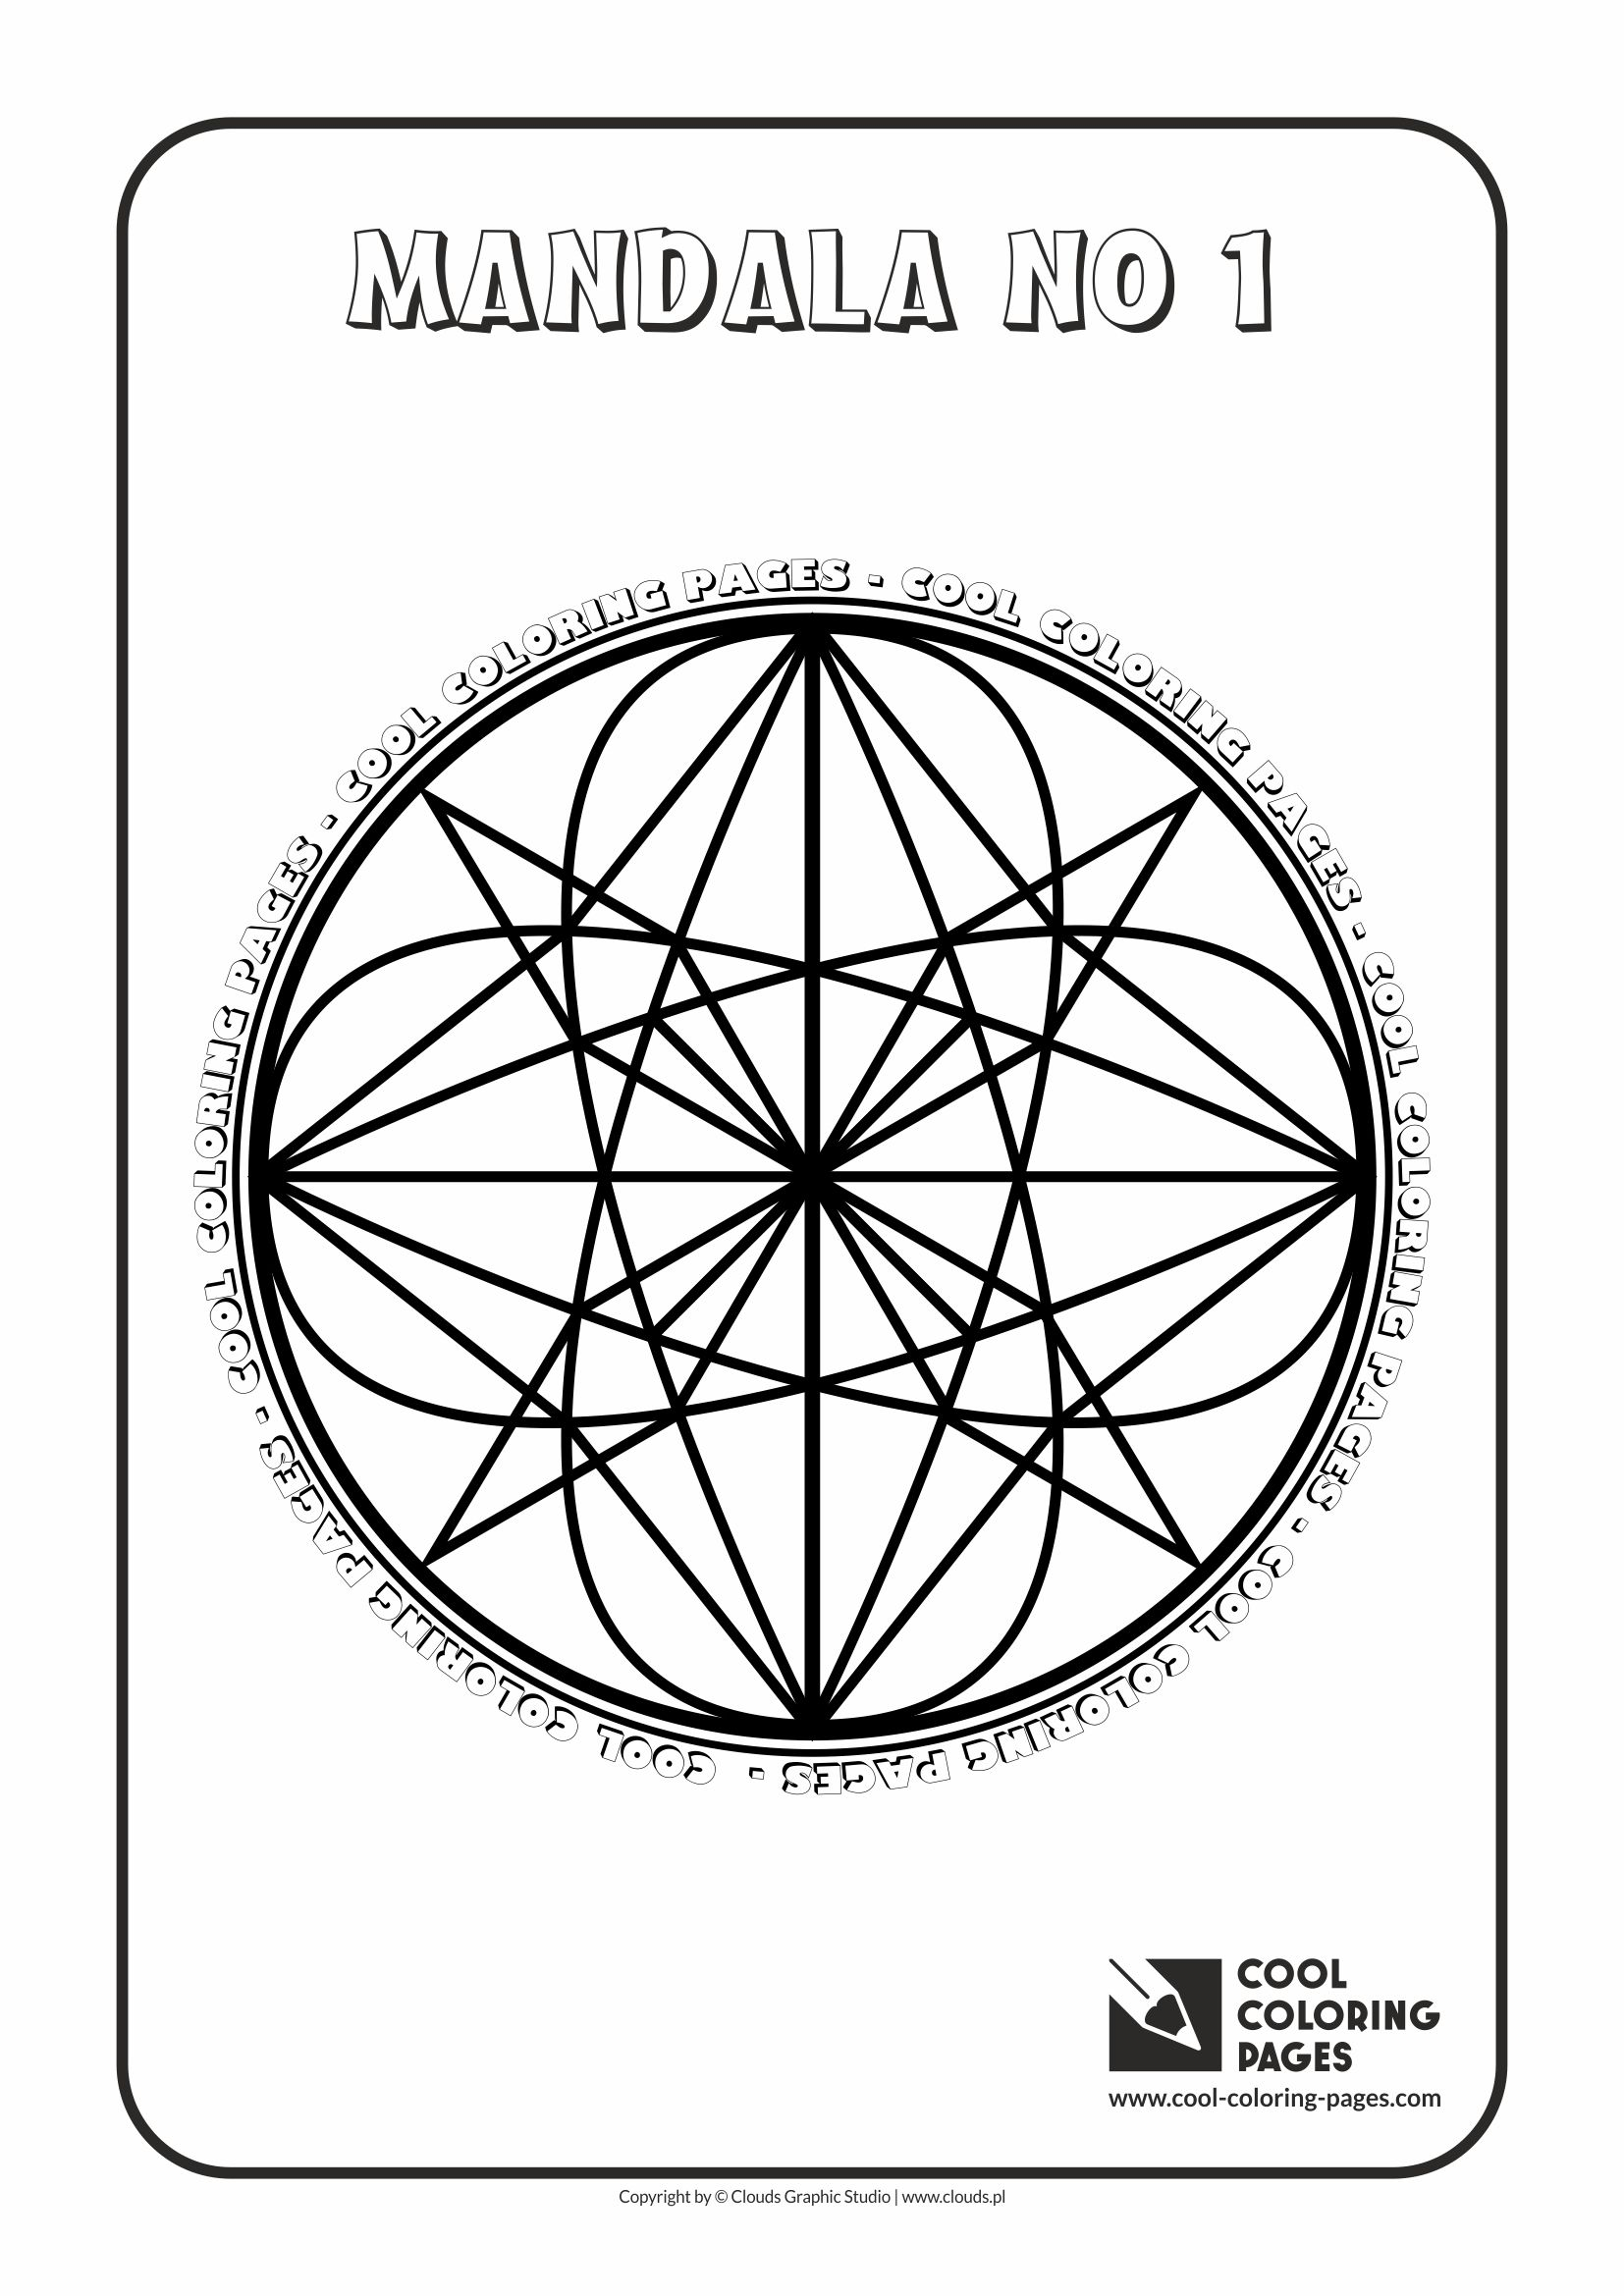 Cool Coloring Pages - Mandalas / Mandala no 1